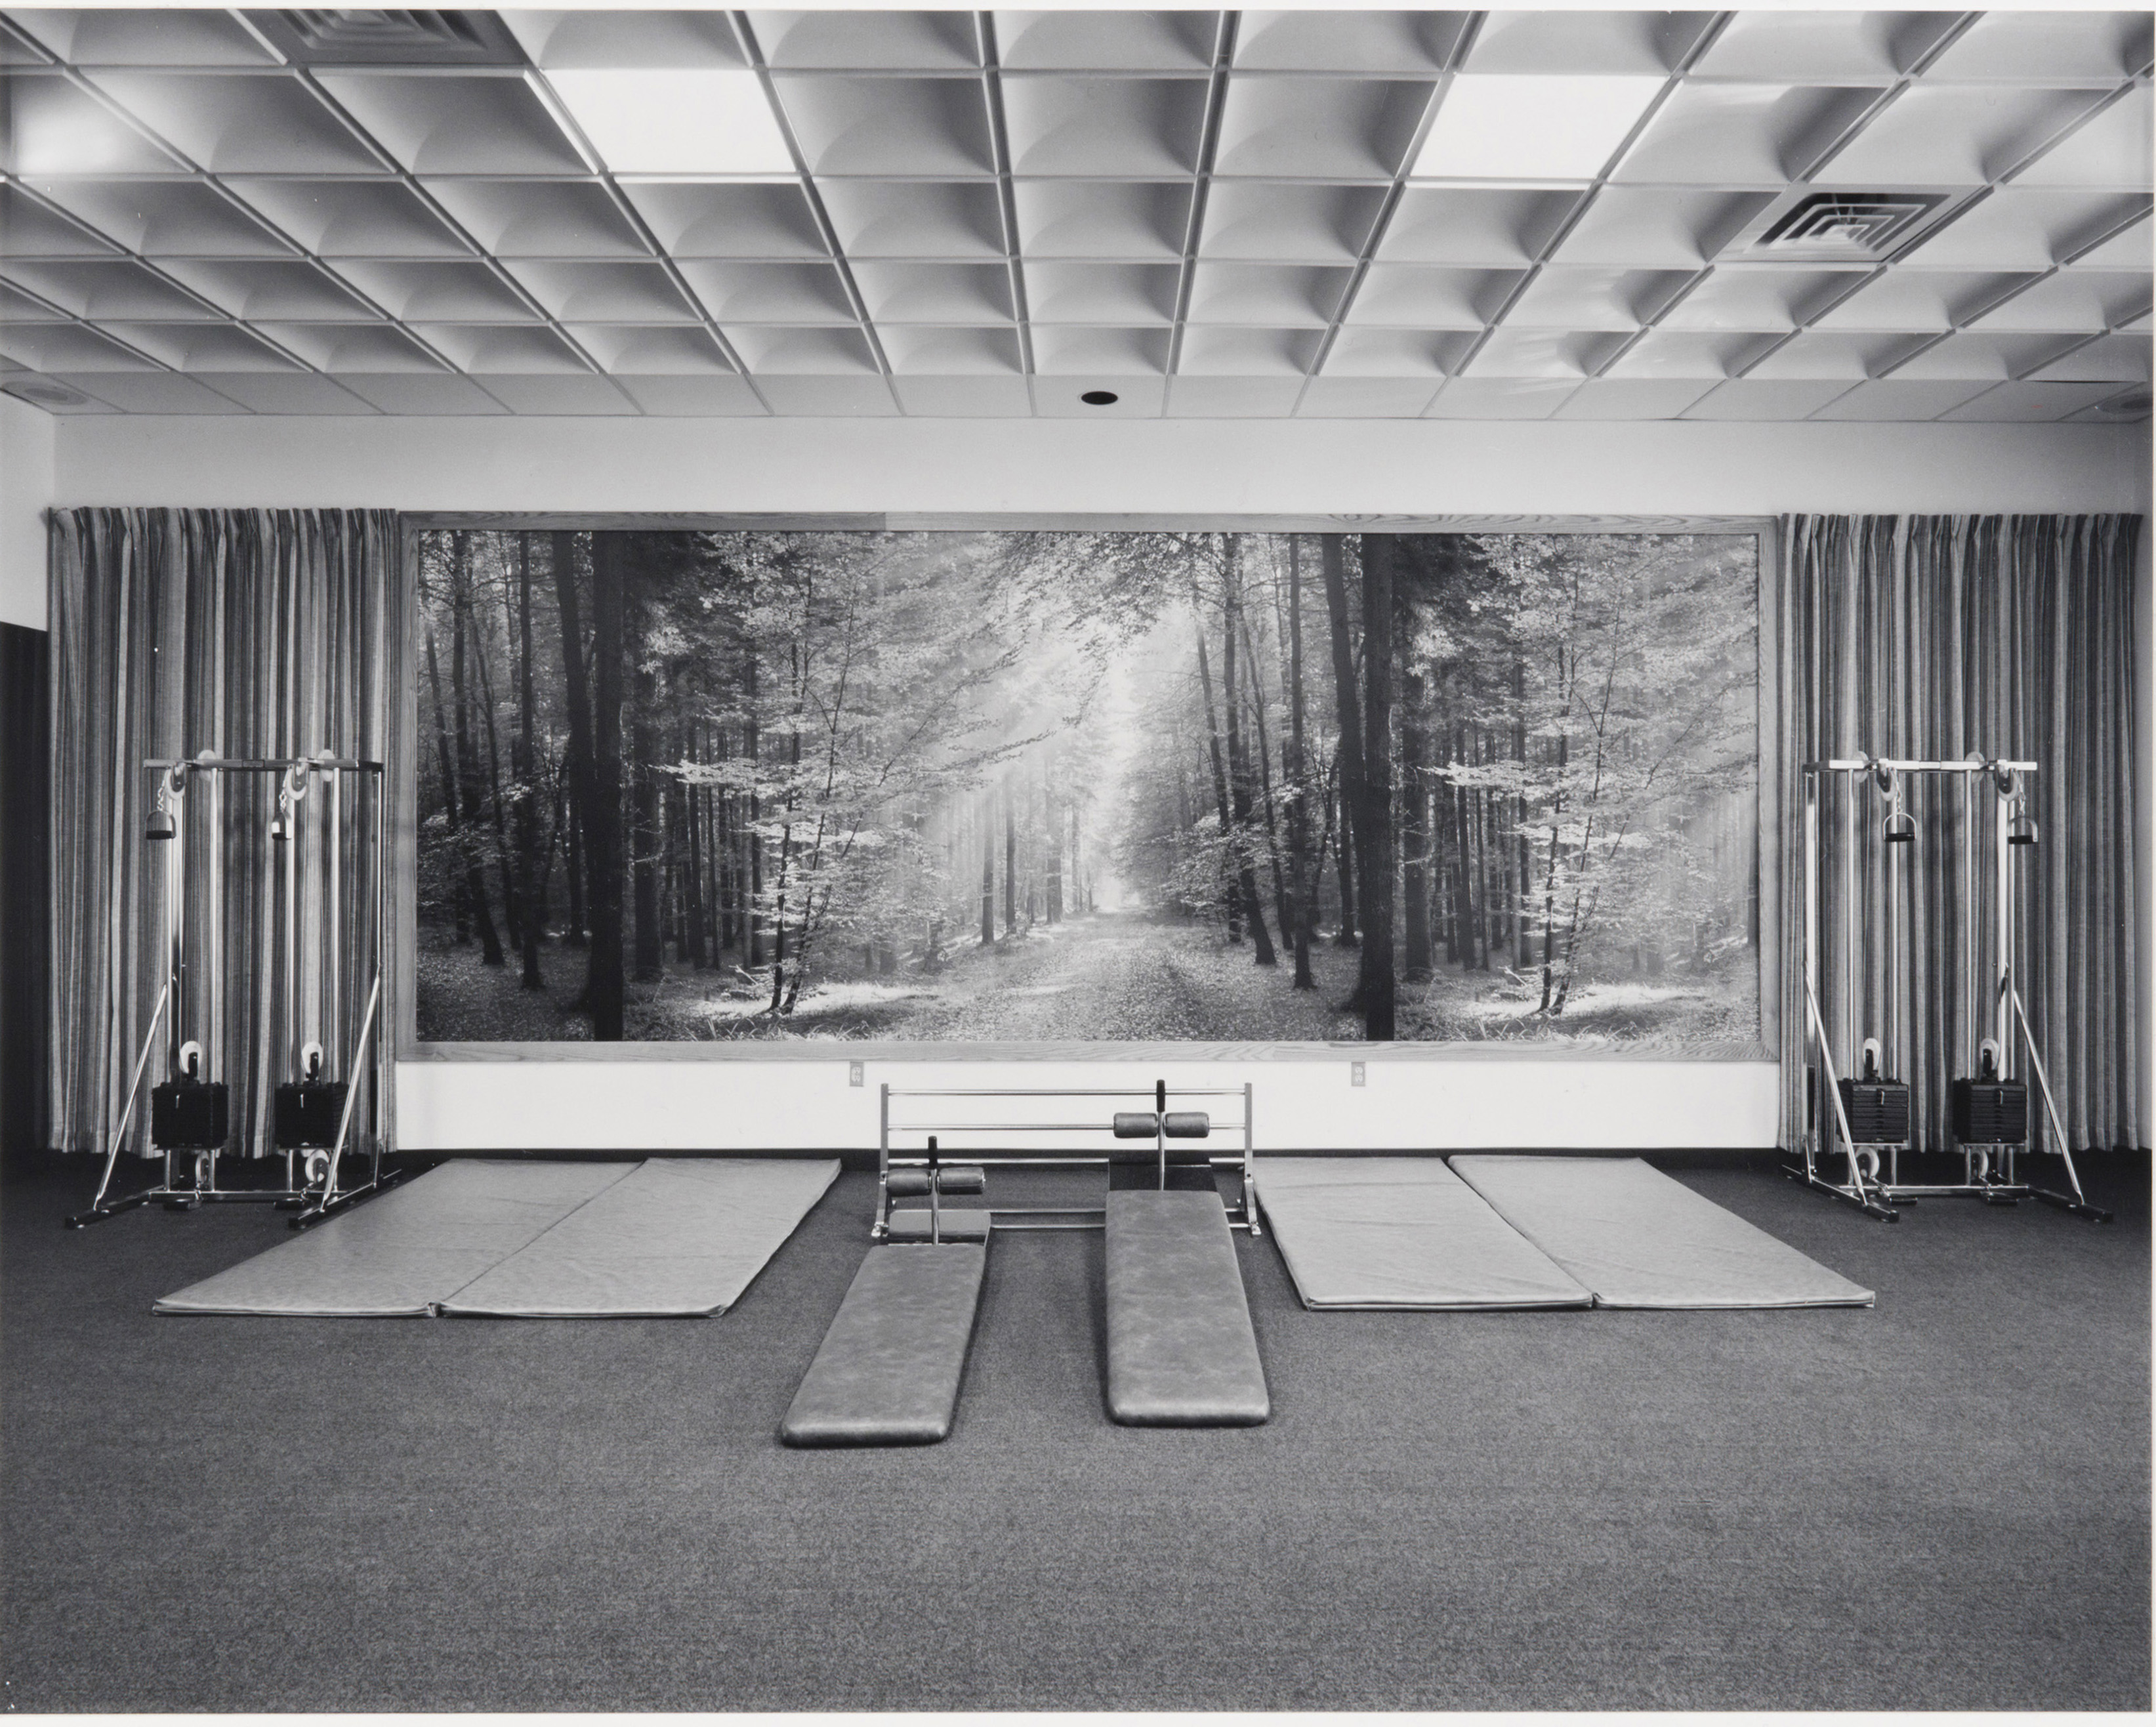 Lynne Cohen photograph of a low-ceilinged fitness club interior with gym mats and weight racks arranged along a wall covered with a forest photomural